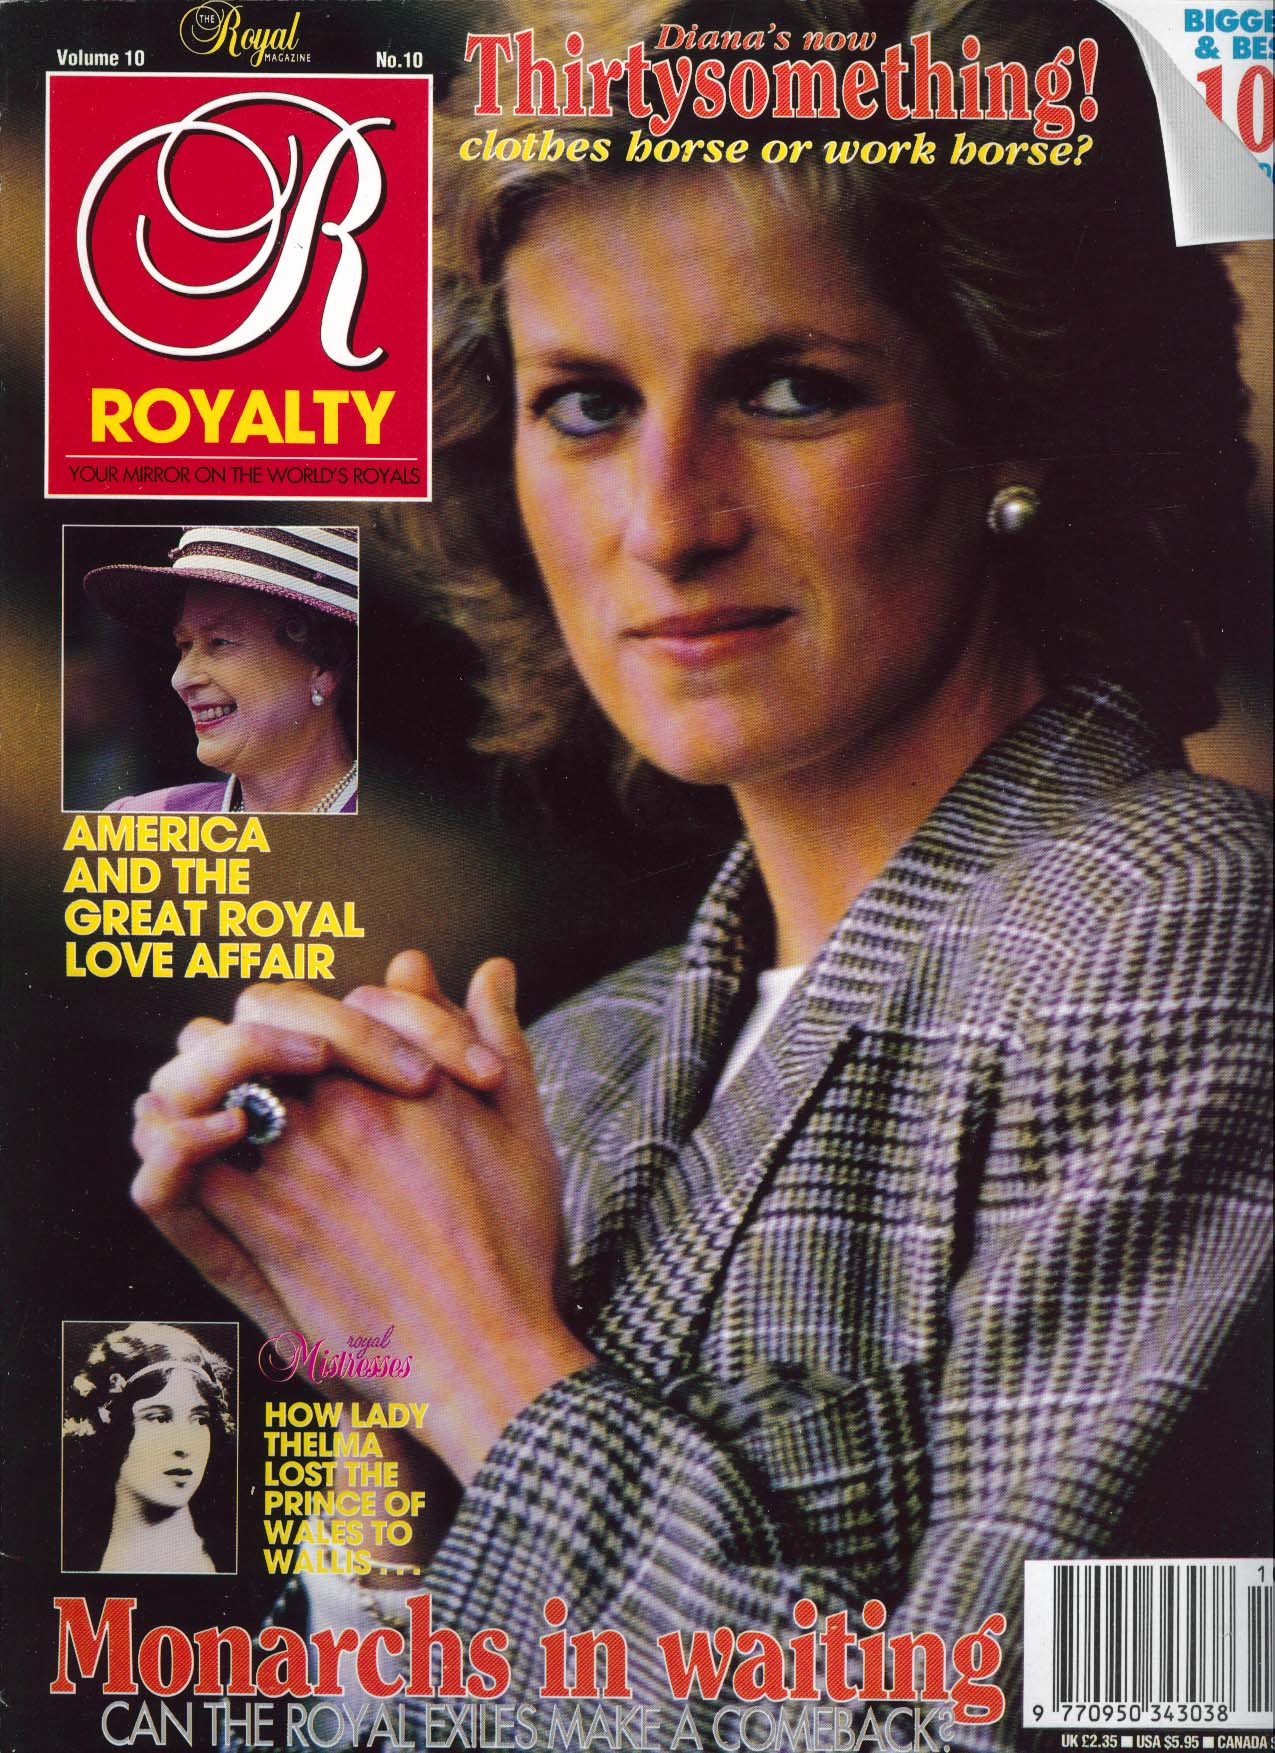 Image for ROYALTY MONTHLY Princess Diana at 30 Lady Thelma Queen Elizabeth 7 1991